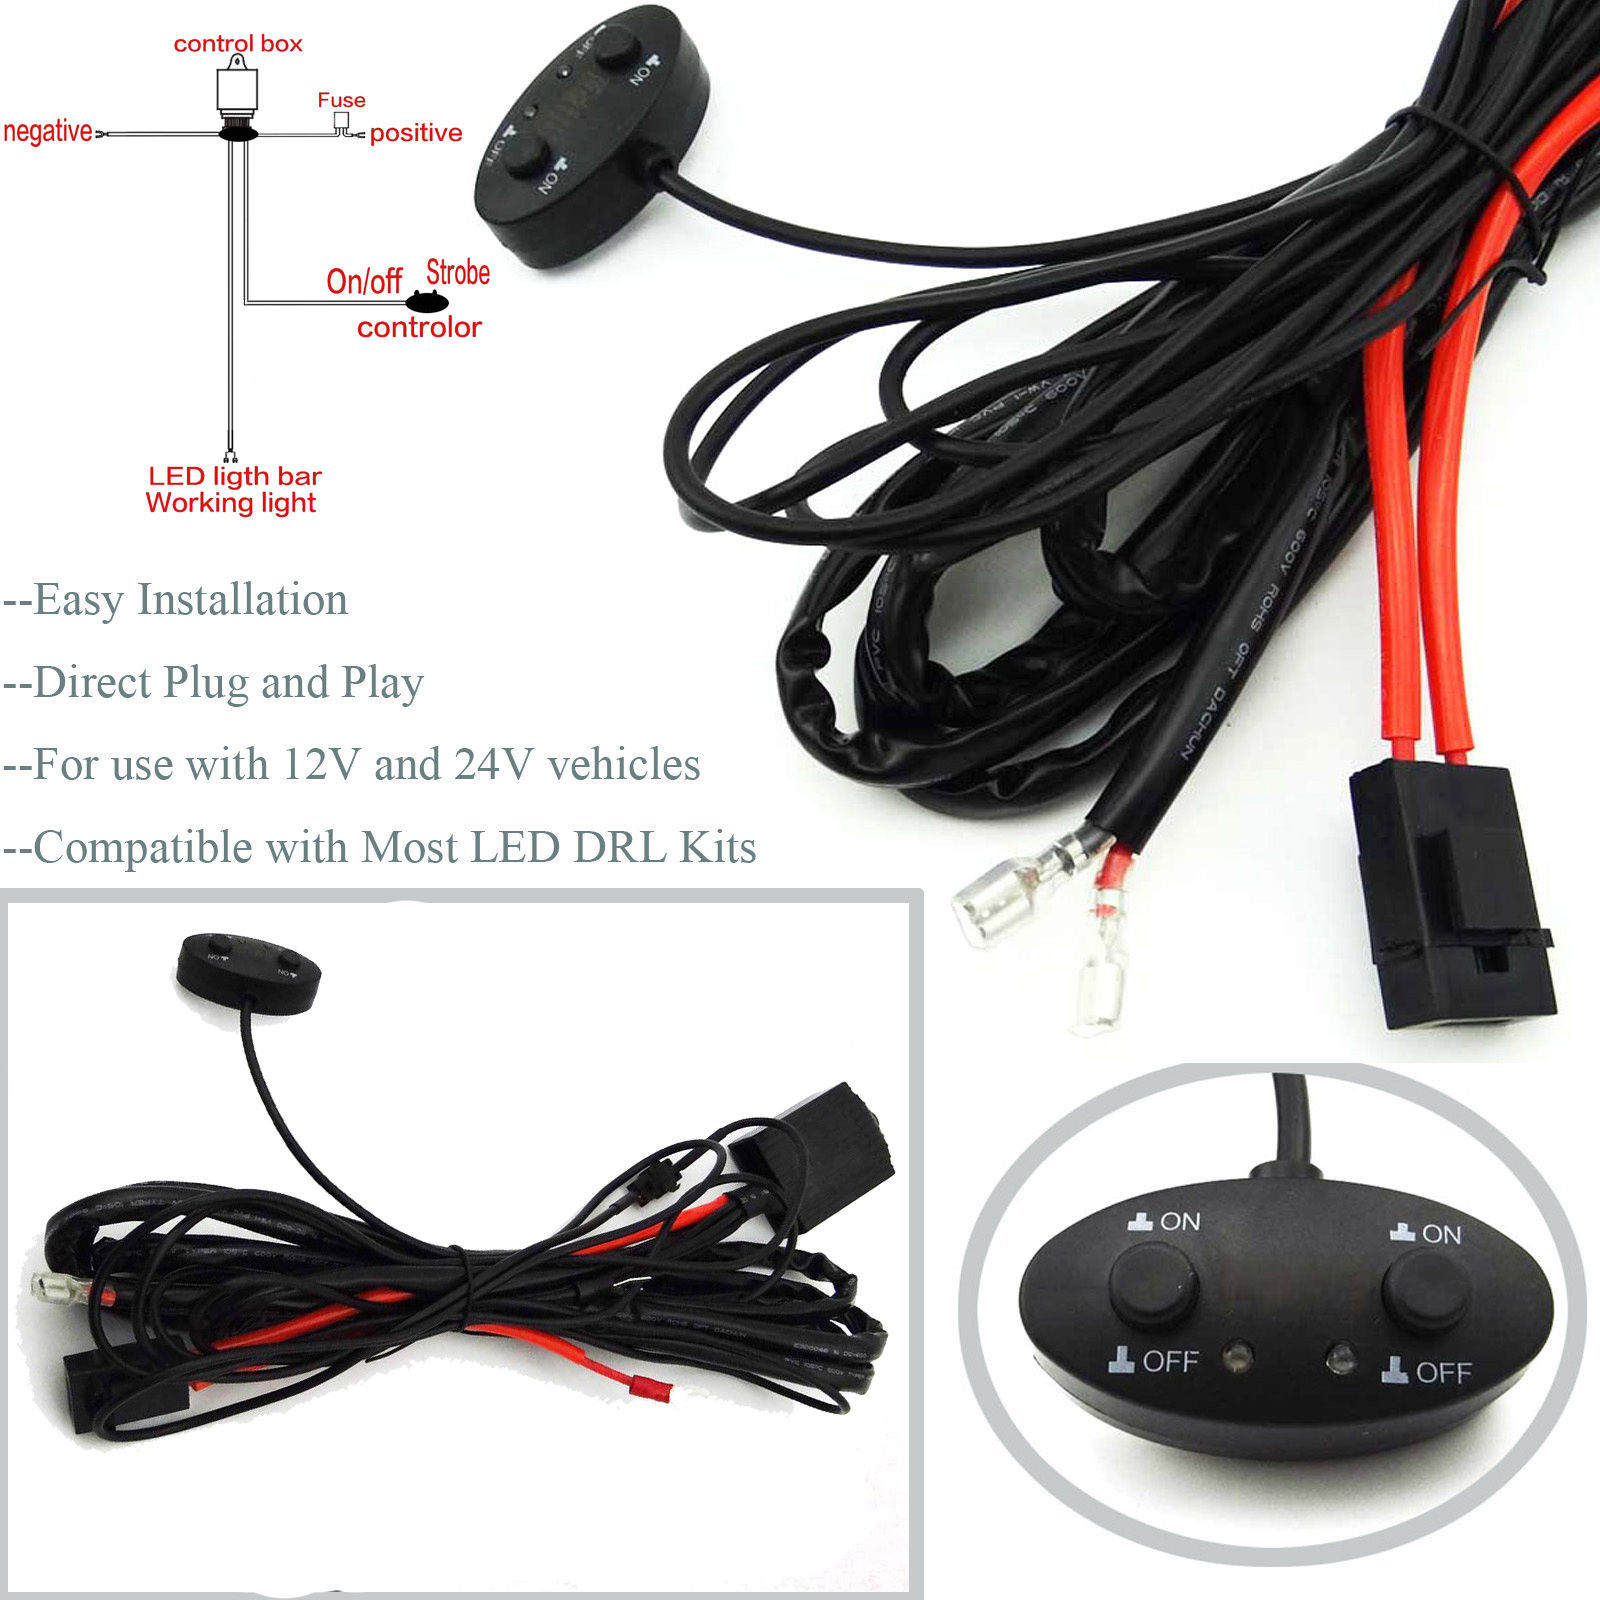 10ft 3m Wiring Harness Kit For Work Light Bar 60 300w Plug Play Direct A In S L1600 Copy44